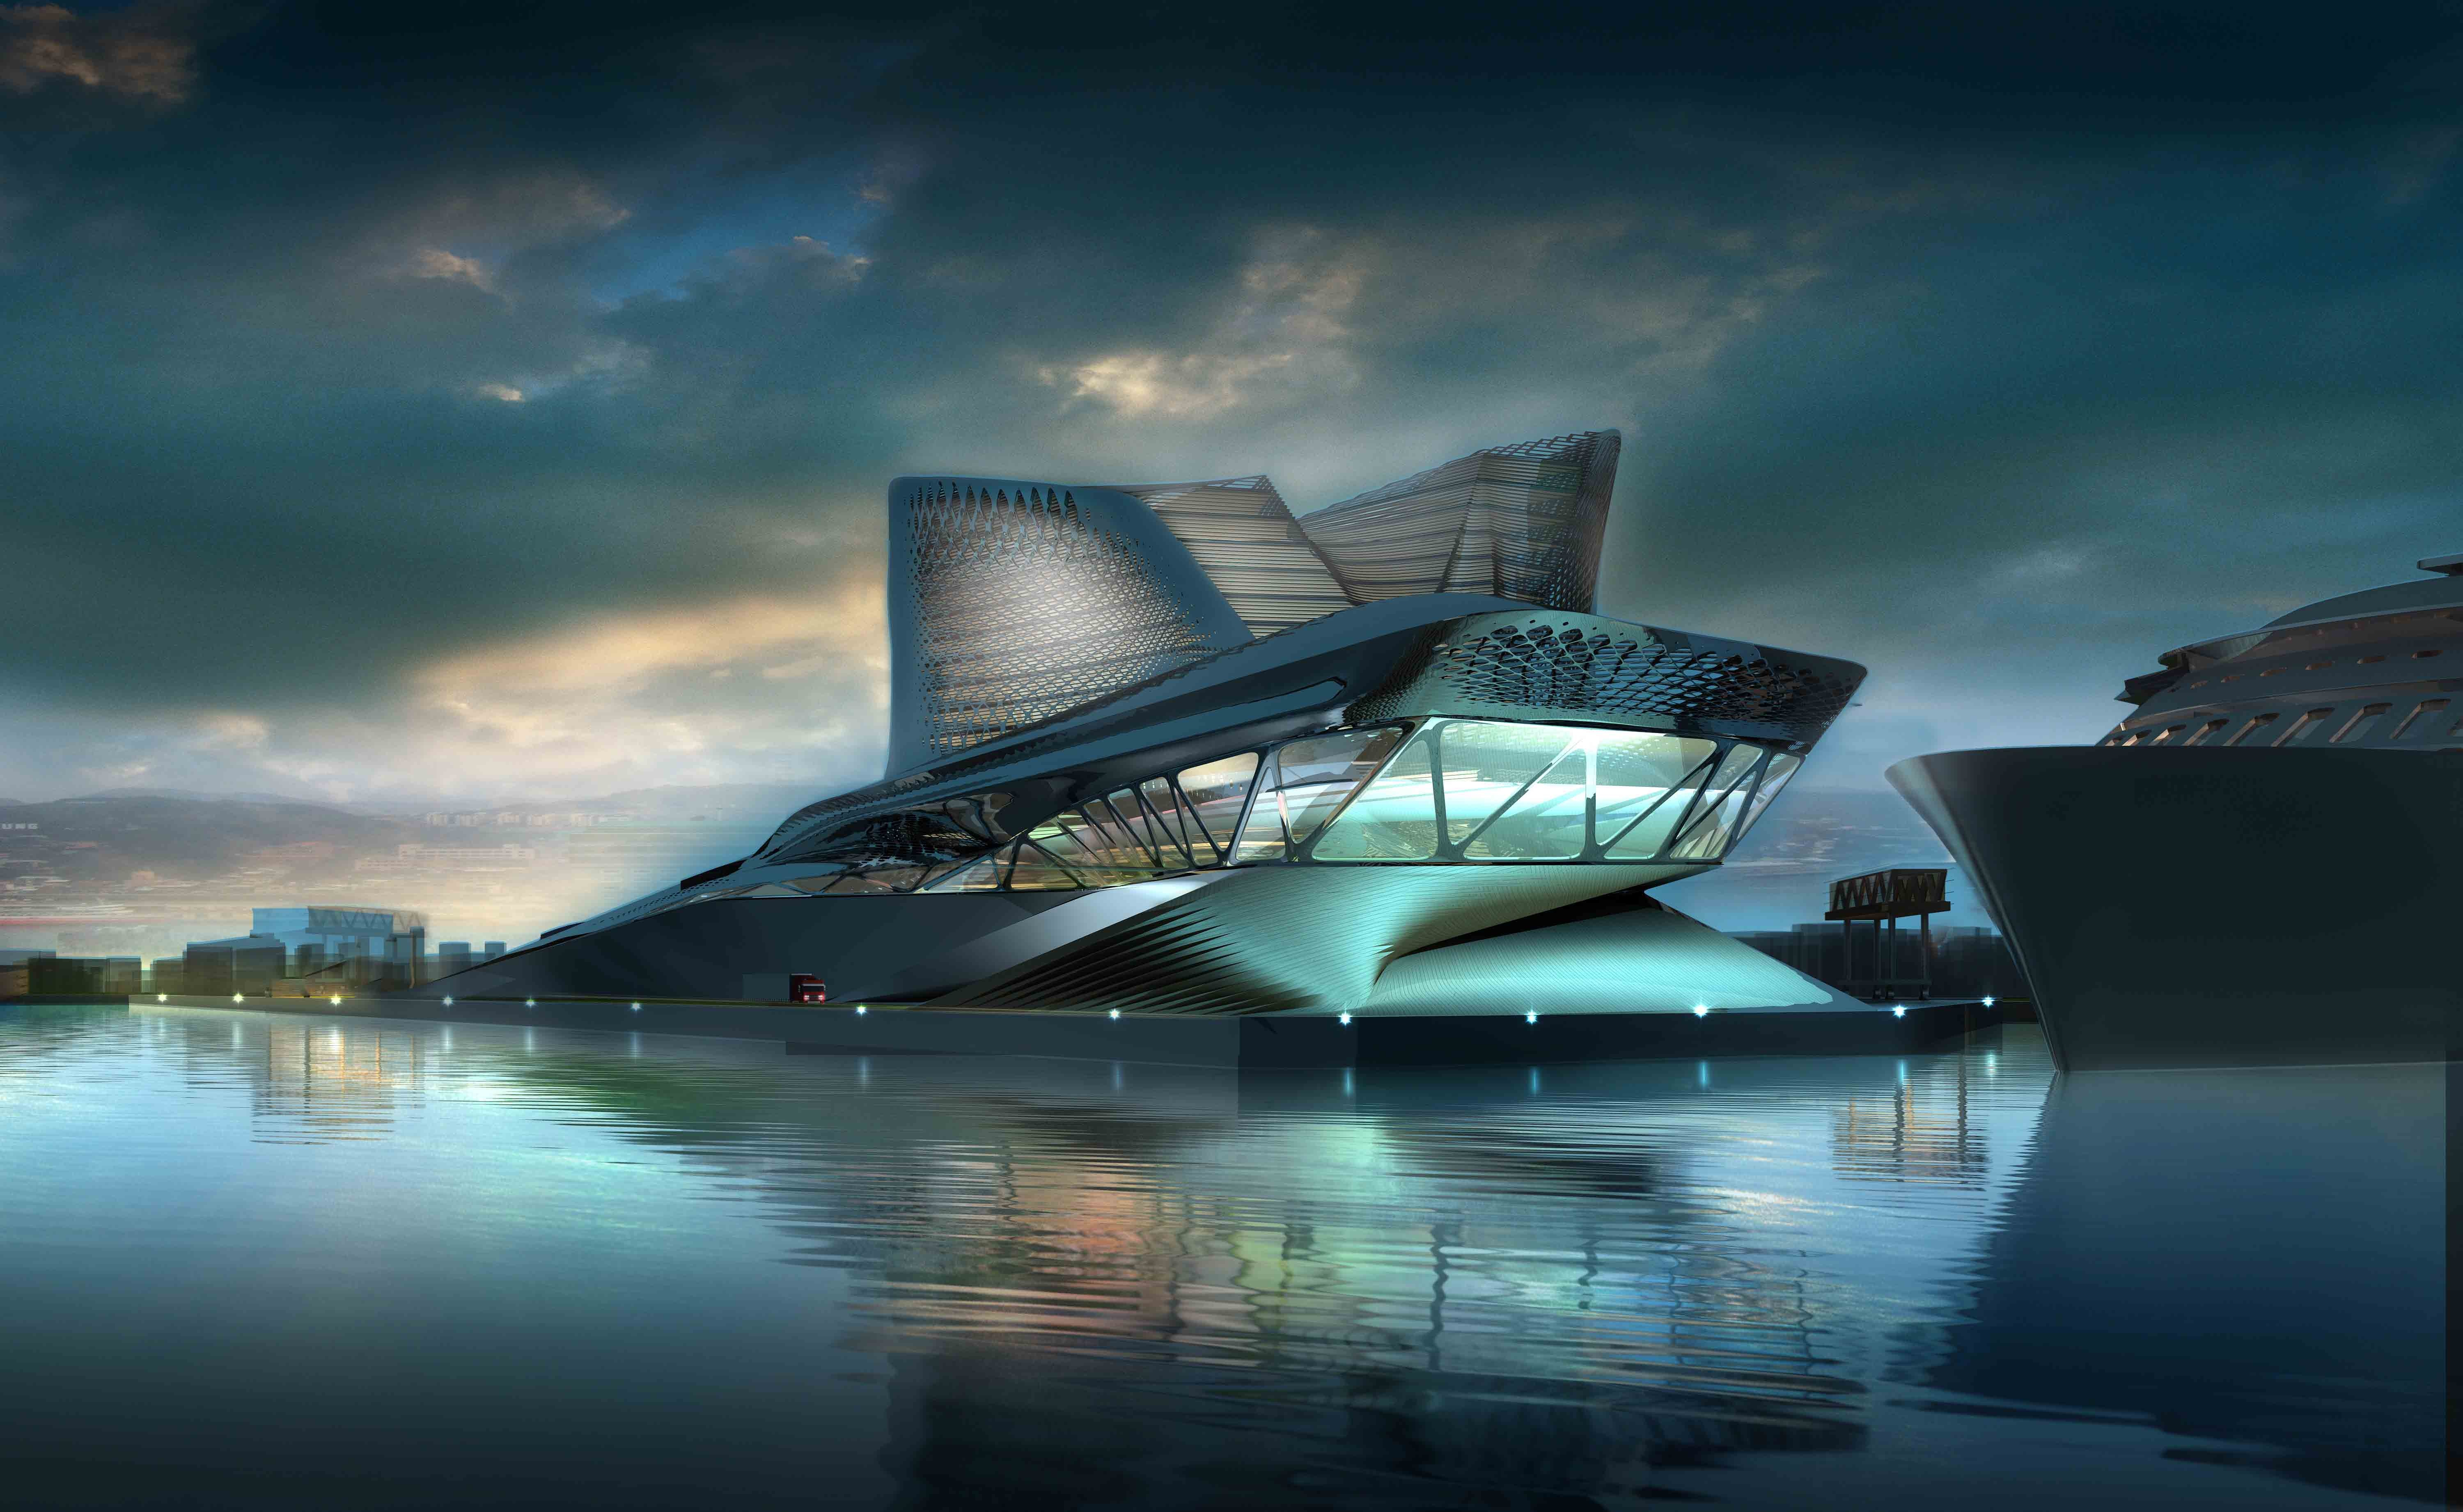 Best Pc Wallpapers Hd Cars Wallpaper Keelung Harbor Service Building Taiwan Tourism